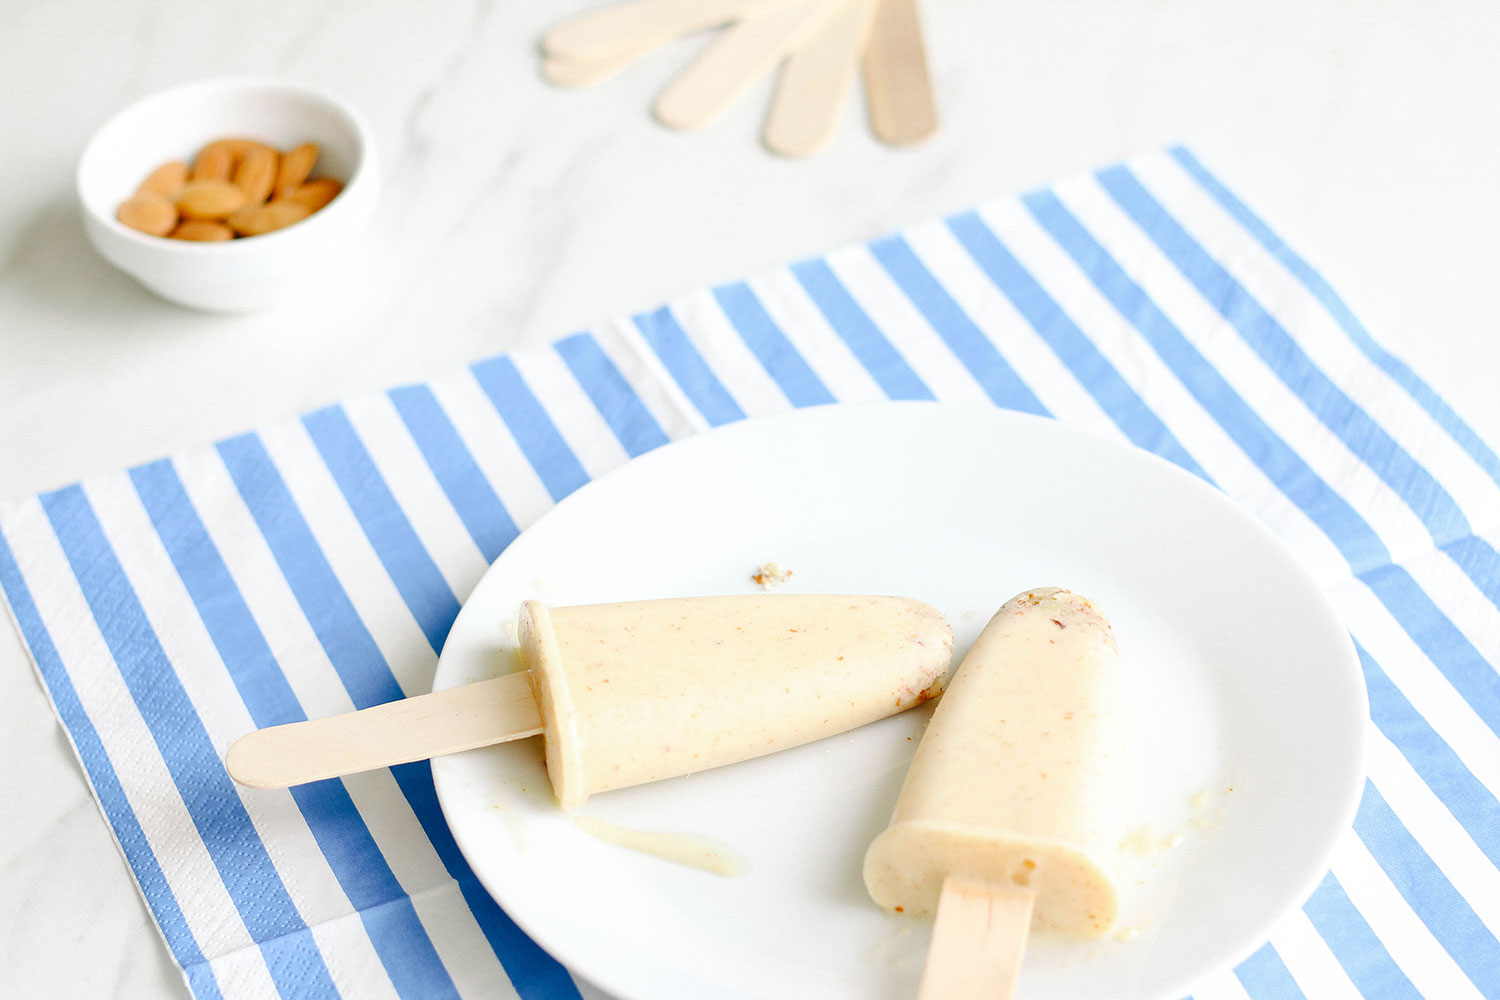 Yogurt Peach Pops Recipe: The perfect go-to snack for cooling off on a hot summer day. Only 100 calories each! https://www.spotebi.com/recipes/yogurt-peach-pops/